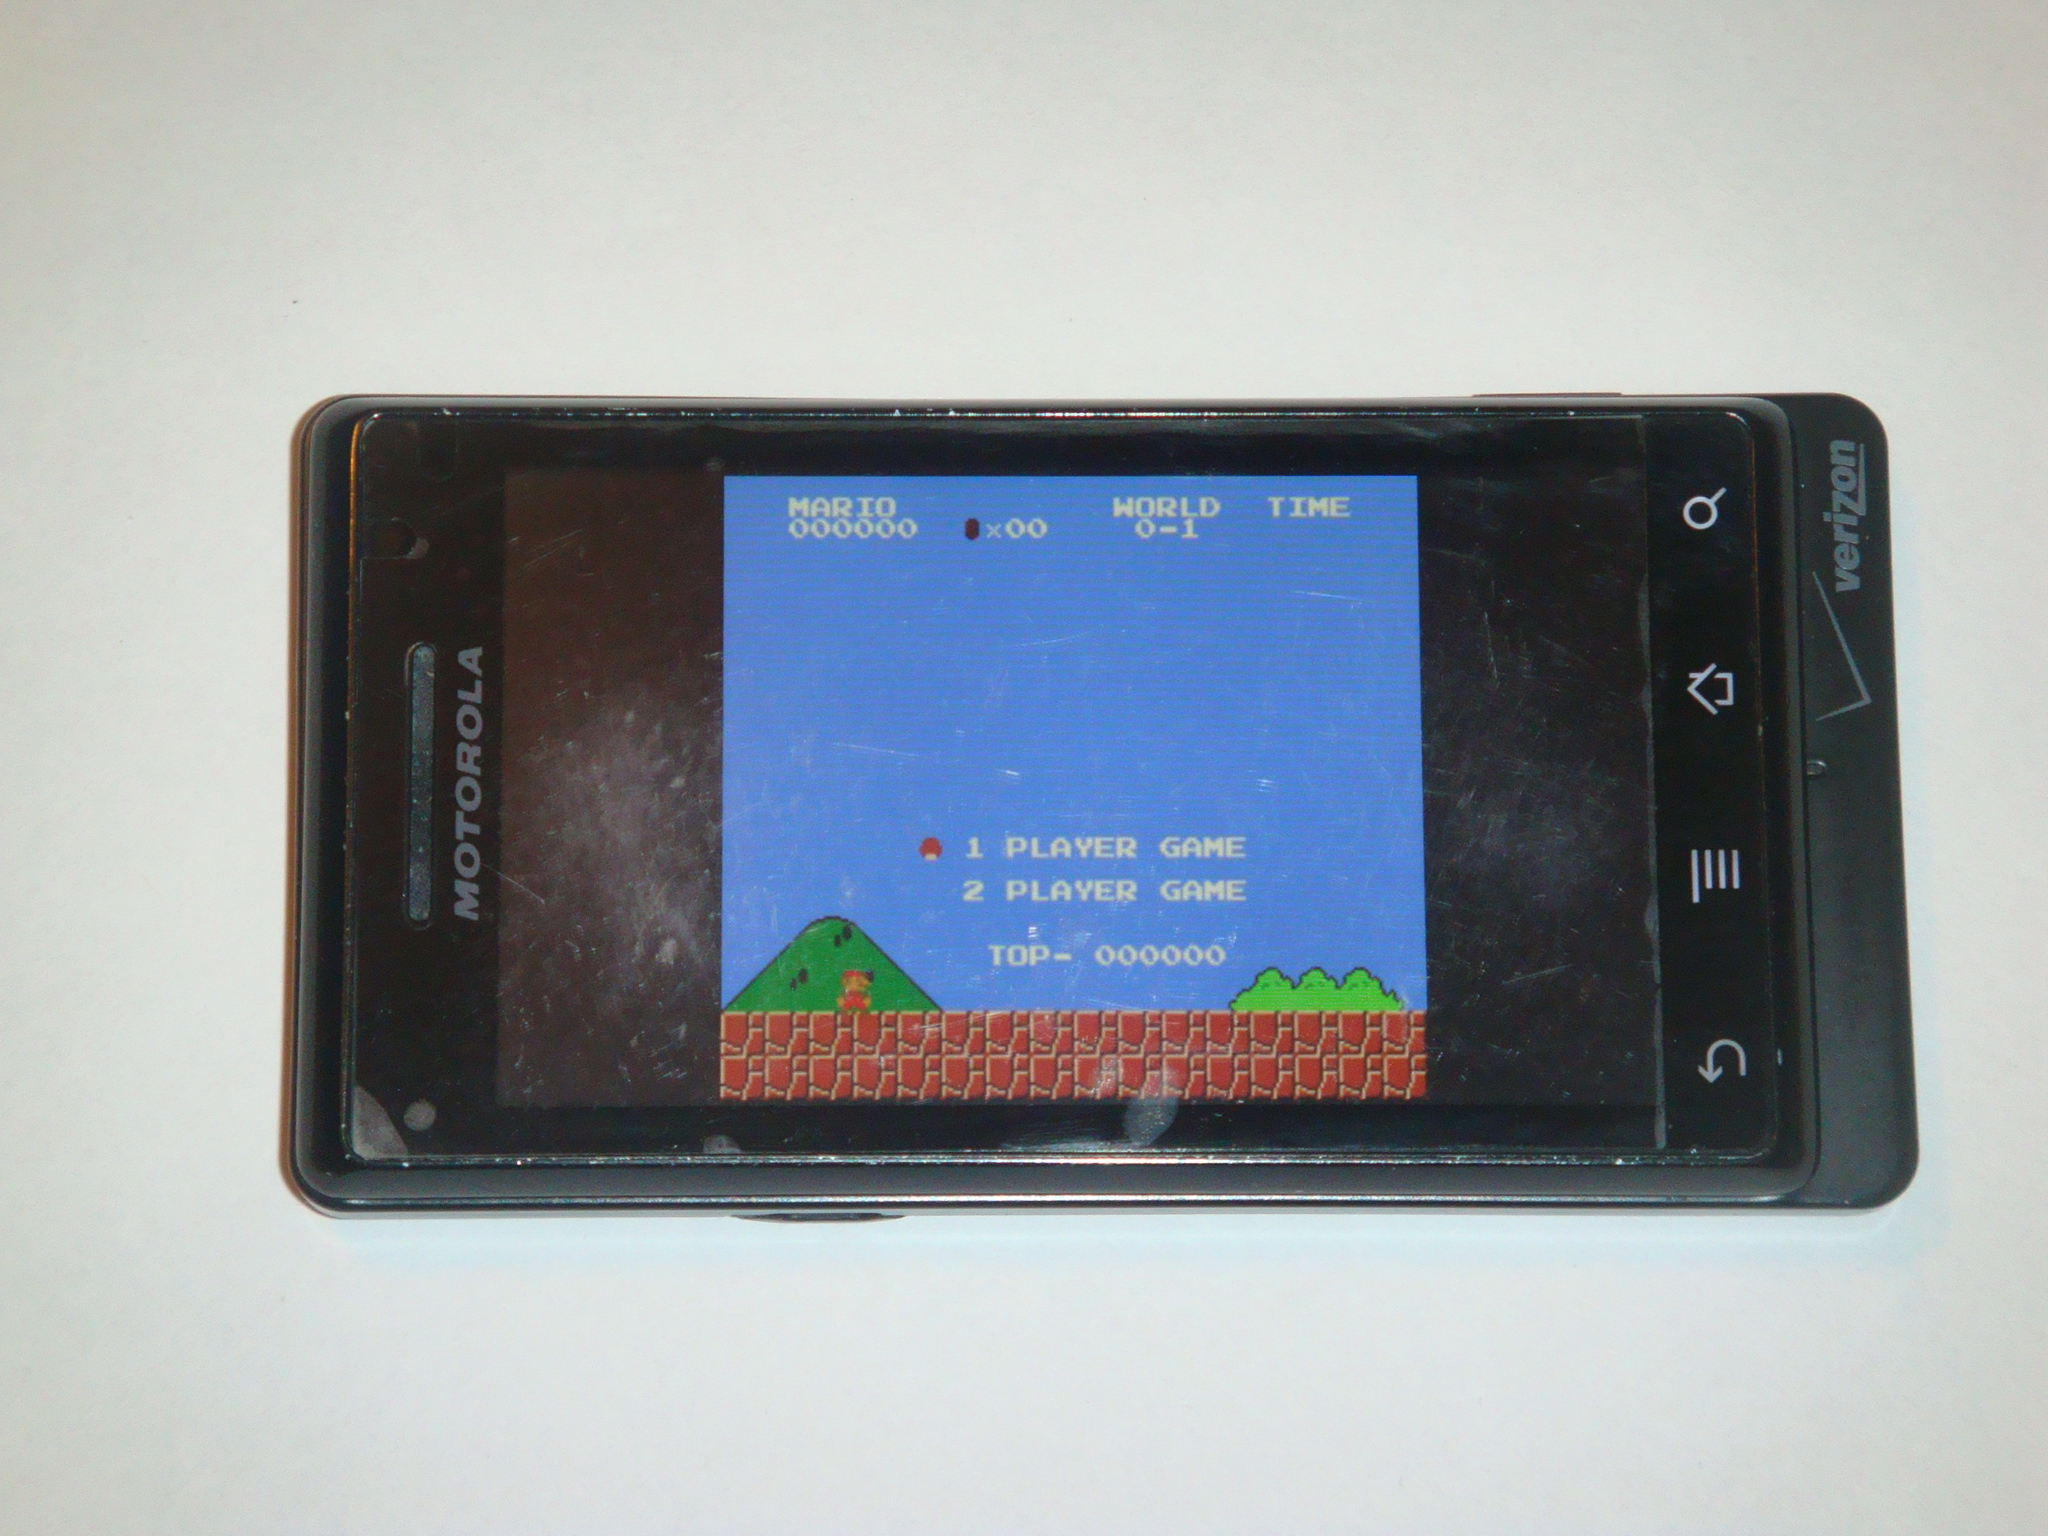 Droid x android emulator